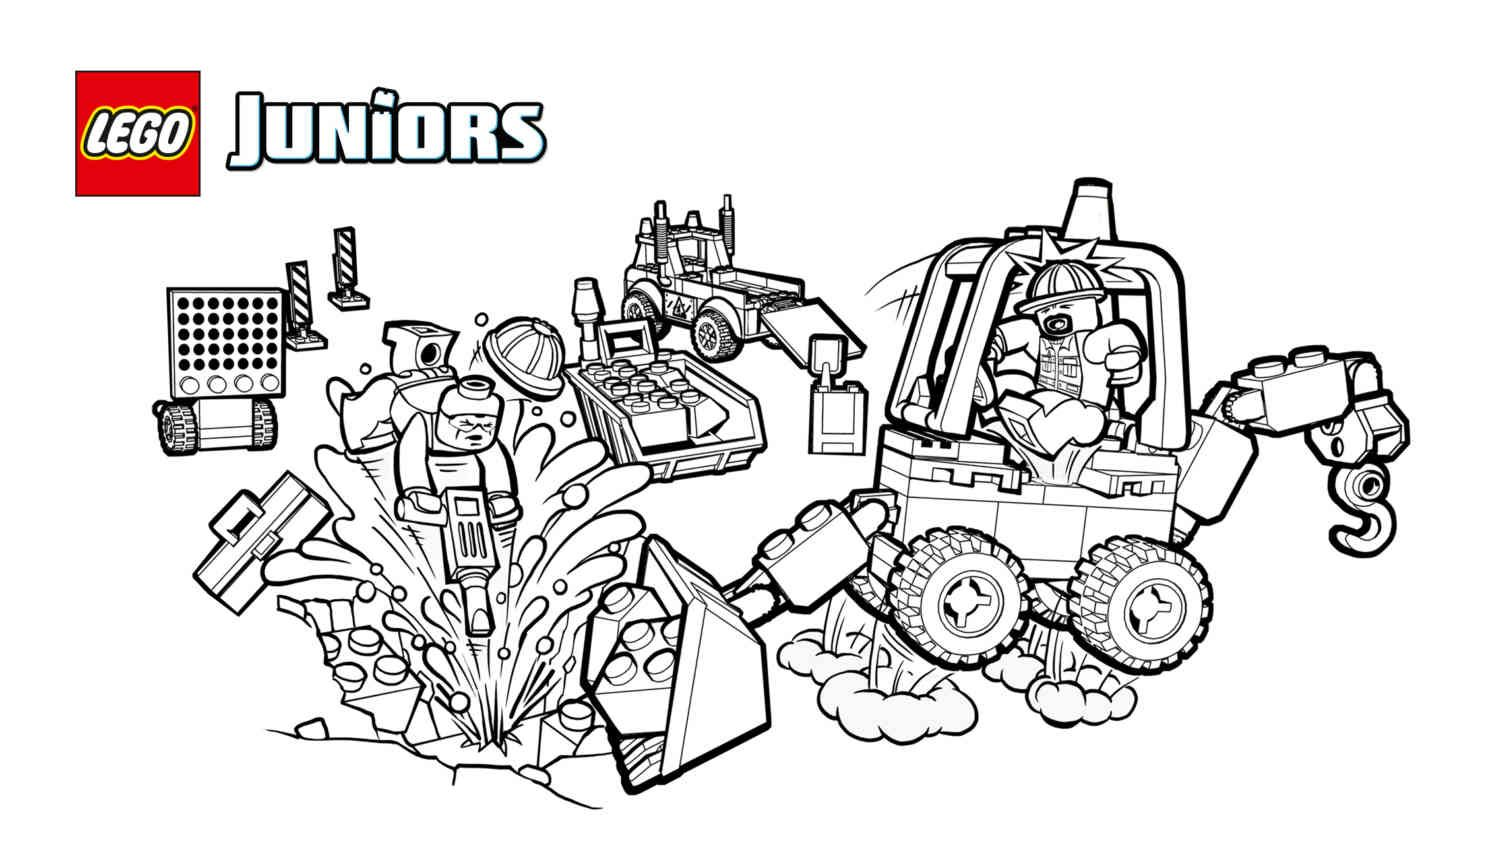 10683 Road Work Truck 2 Coloring Pages Activities Lego Juniors Lego Com Coloring Pages Lego Construction Lego Juniors